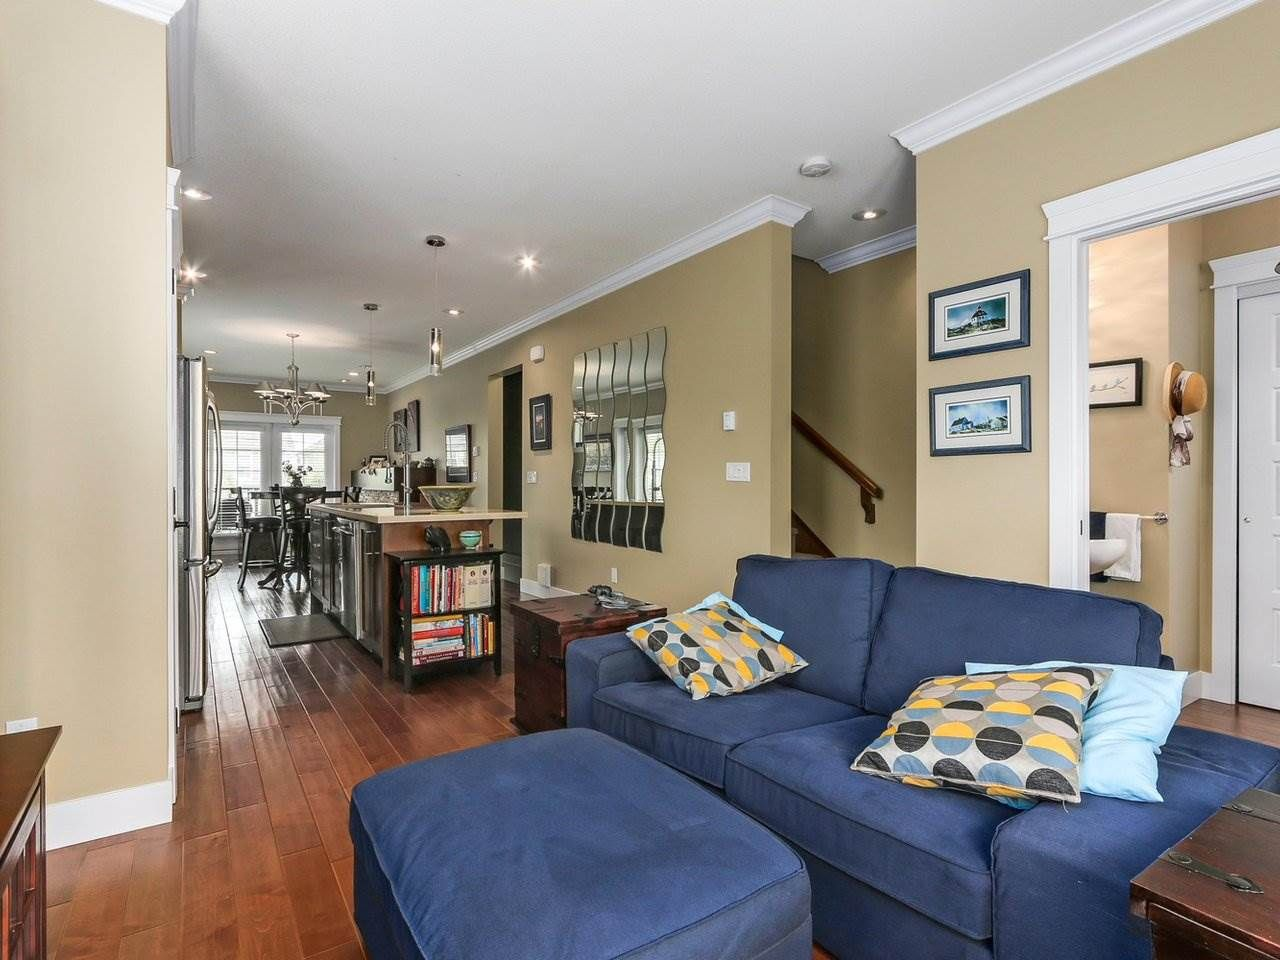 """Photo 9: Photos: 31 17171 2B Avenue in Surrey: Pacific Douglas Townhouse for sale in """"AUGUSTA TOWNHOUSES"""" (South Surrey White Rock)  : MLS®# R2280398"""